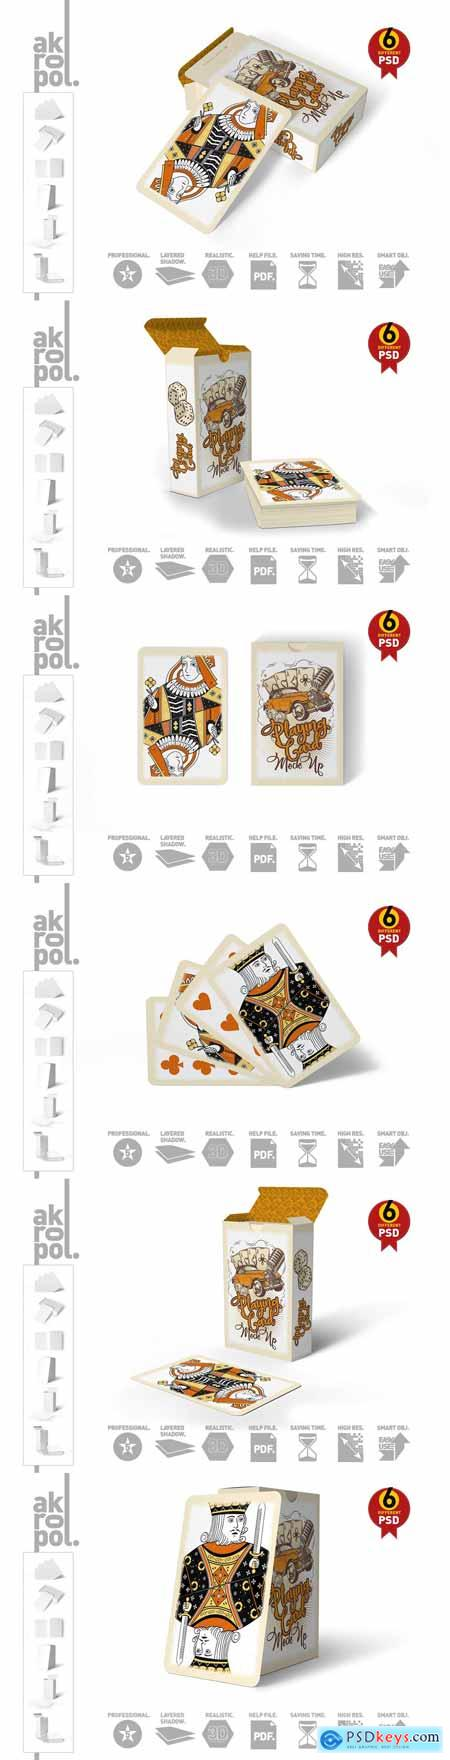 Playing Cards Mock Up 3080751